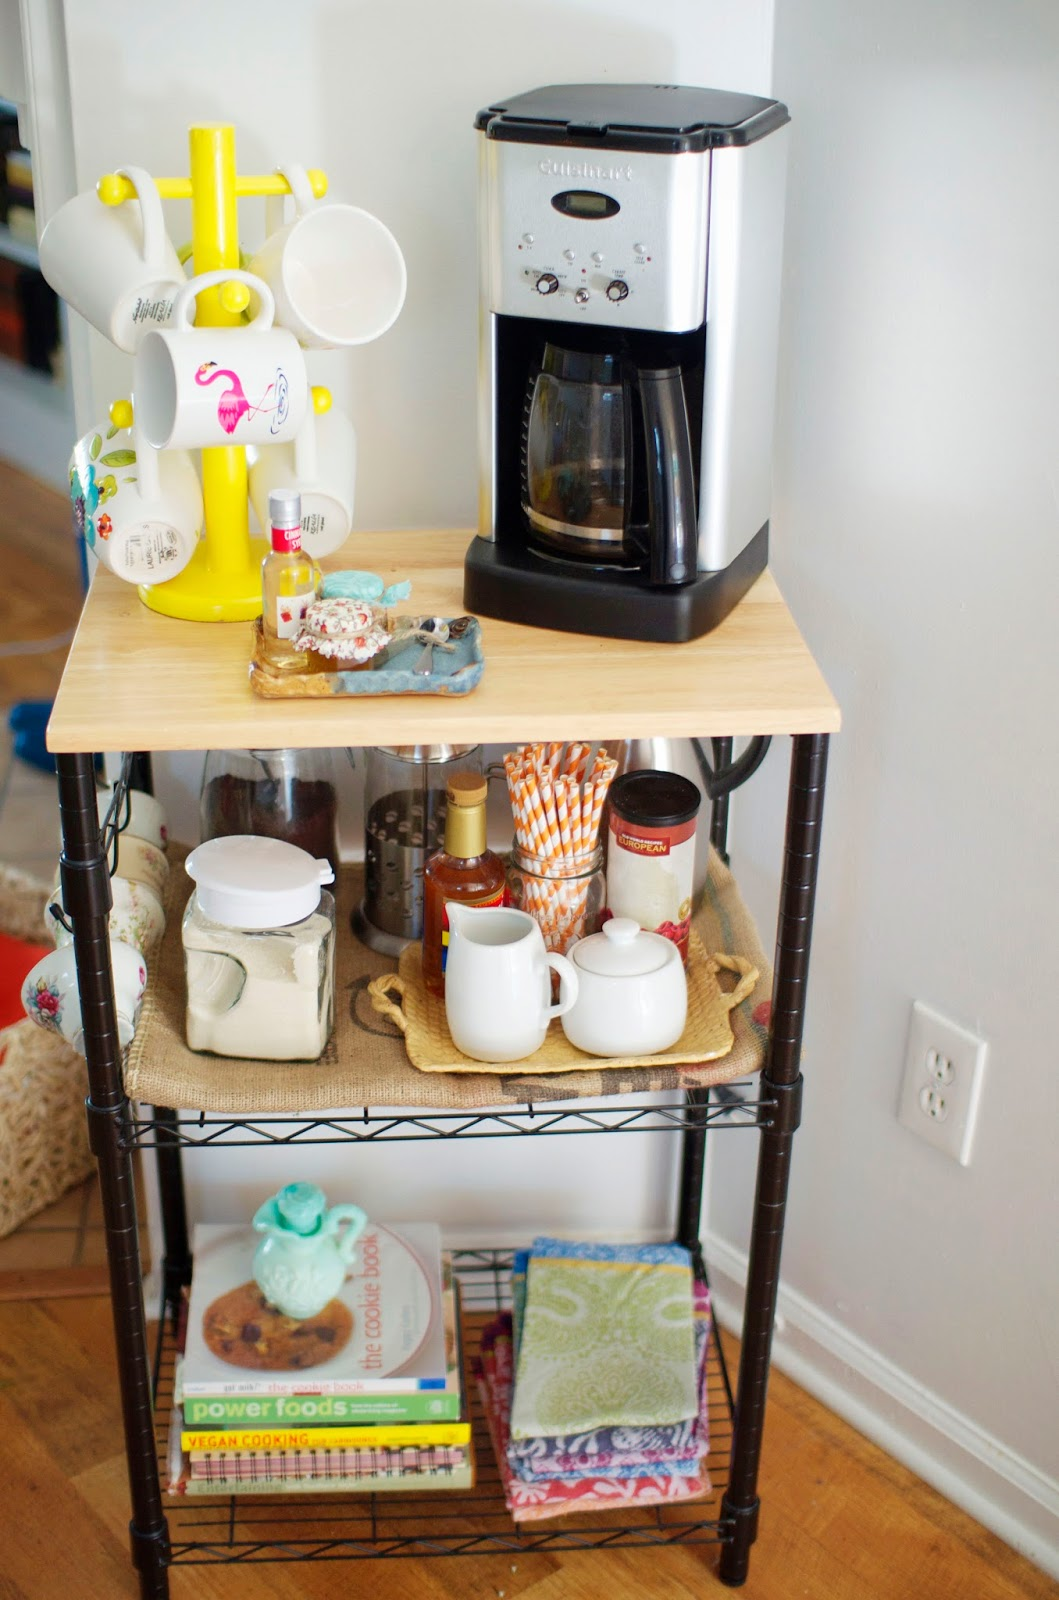 Redecorating the rooms in your home can bring some chaos, but it also brings a lot of excitement as you watch an entirely new look come to life in rooms that had become mundane and dated. Tea Station Ideas To Keep You Warm In The Cold Days